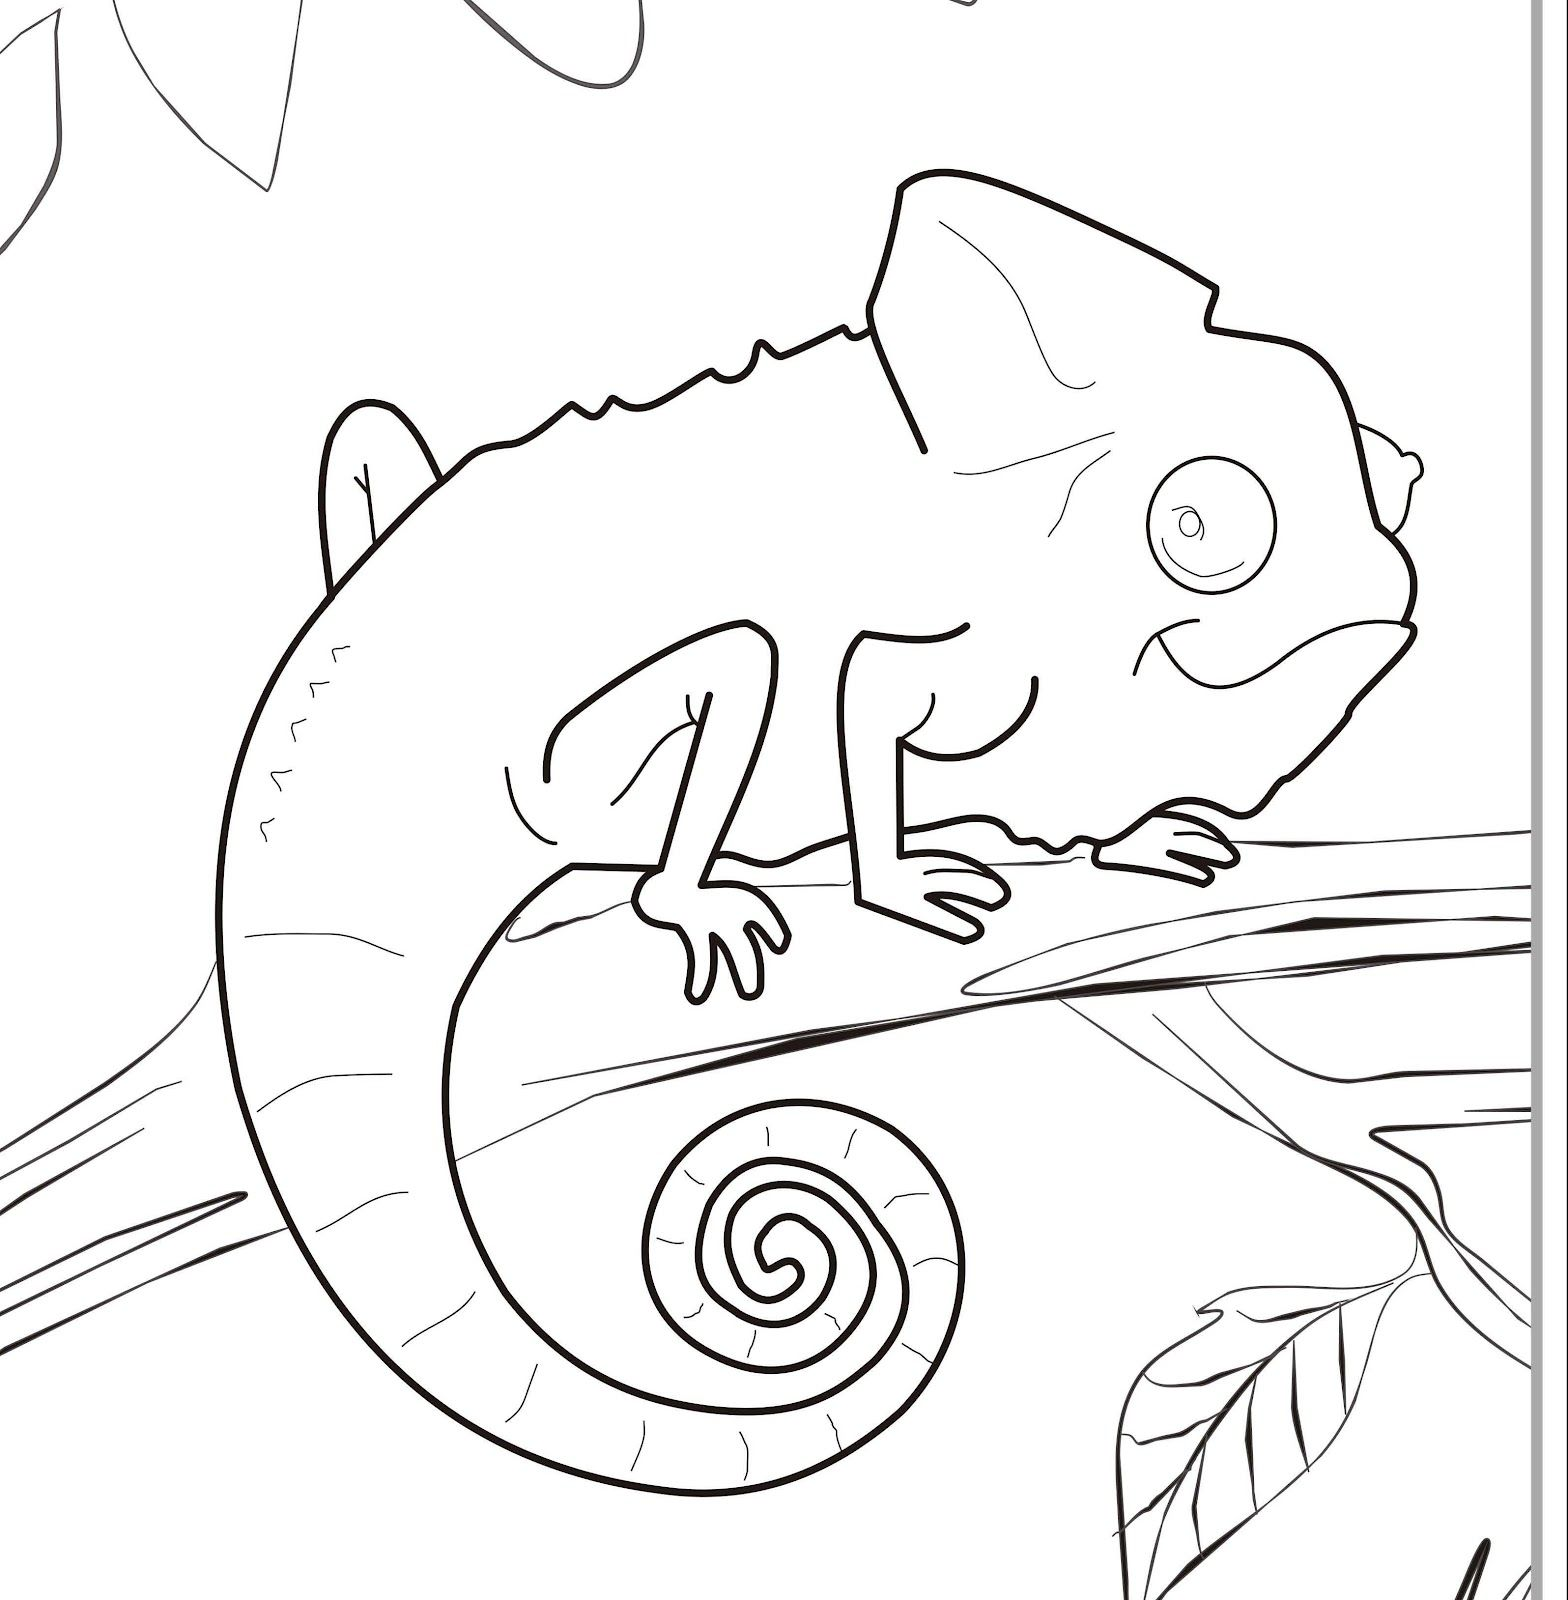 coloring book camilion chameleon coloring pages to printable - Chameleon Coloring Pages Printable